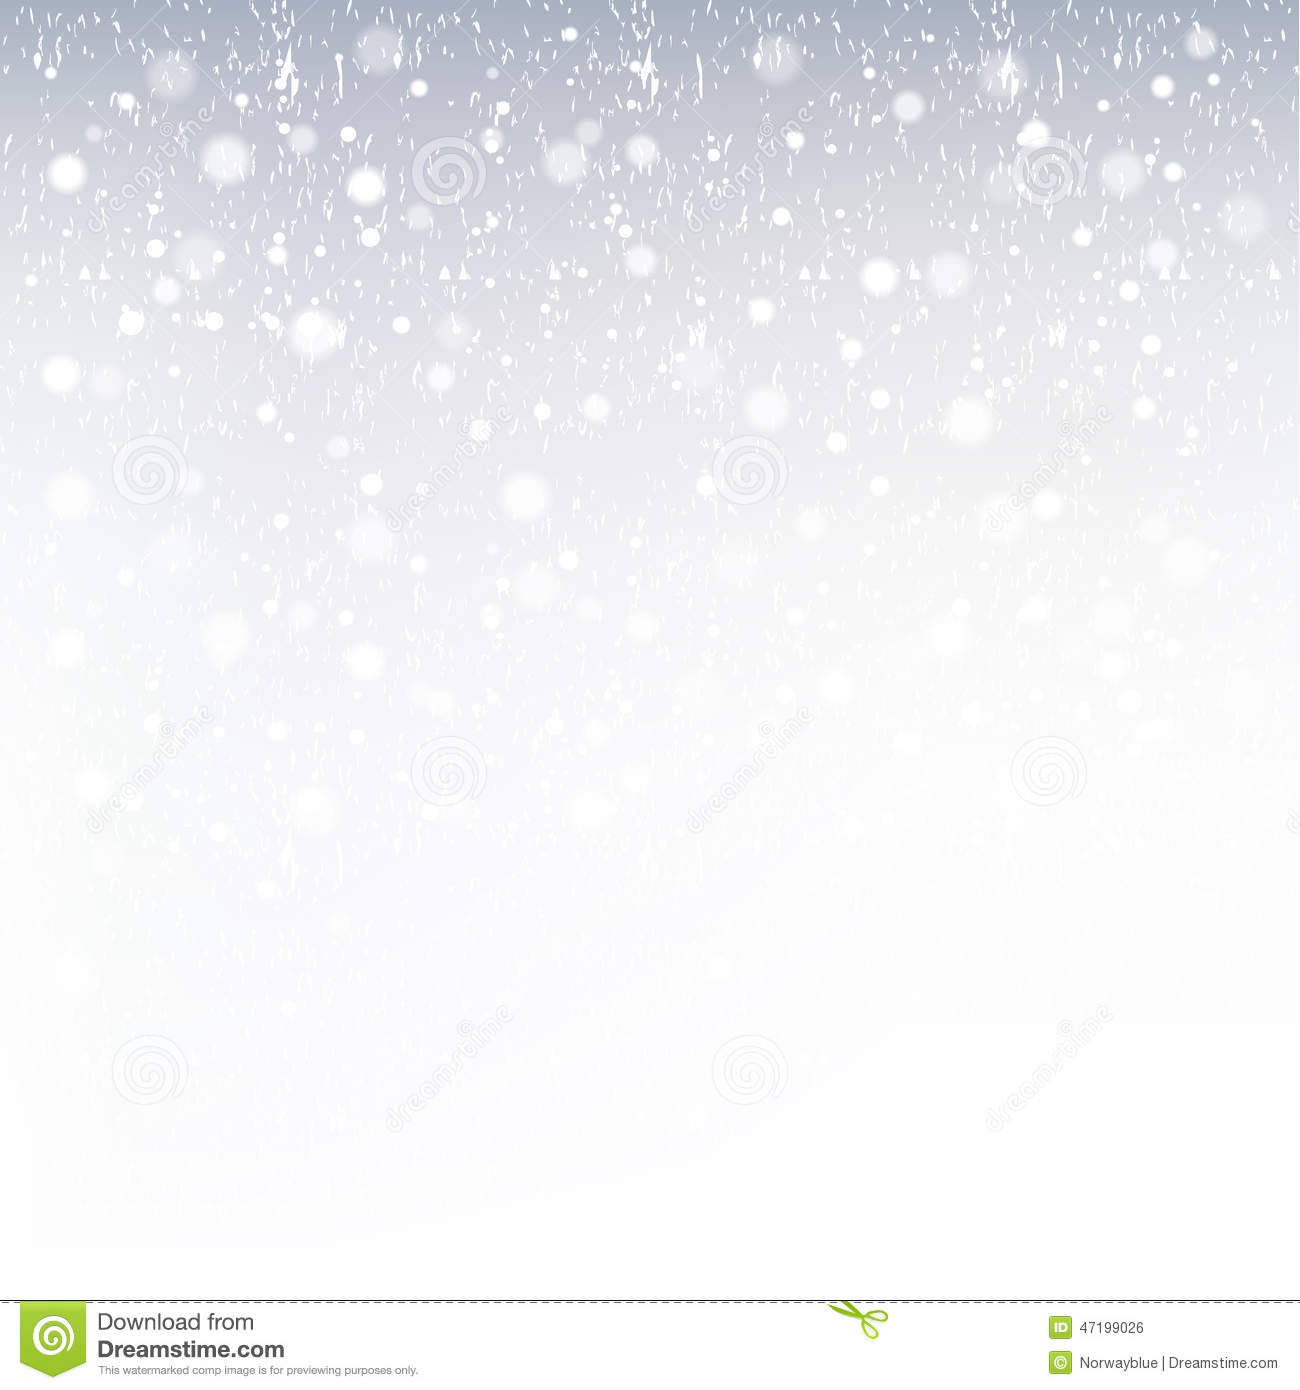 Background image transparency - Background Contains File Gradient Mesh Snowing Transparency